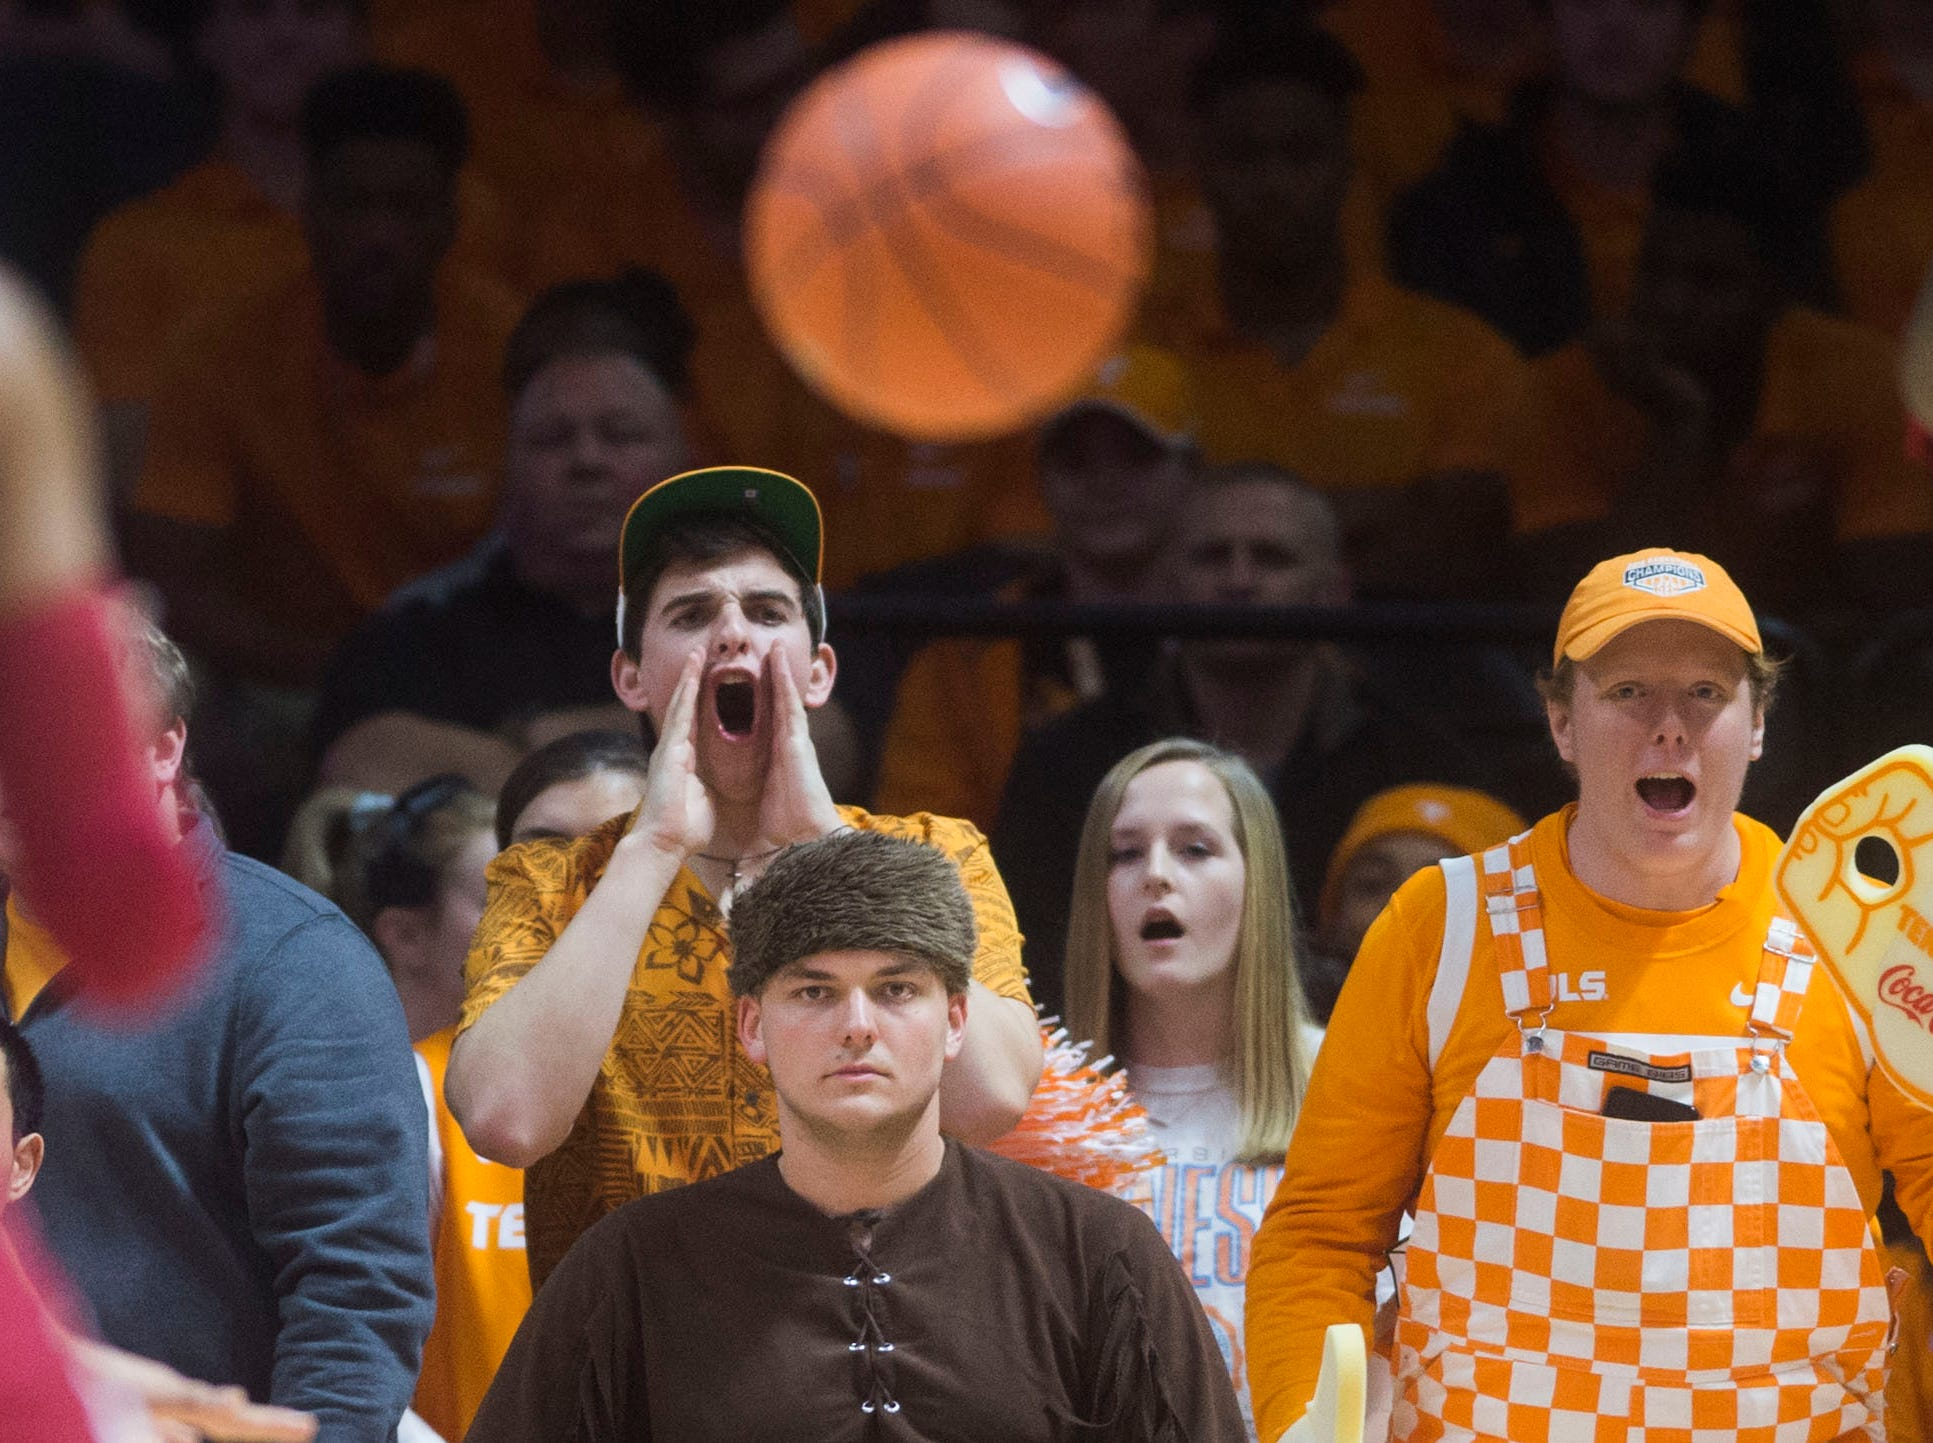 Fans yell during a NCAA men's basketball game between Tennessee and Arkansas at Thompson-Boling Arena Tuesday, Jan. 15, 2019.